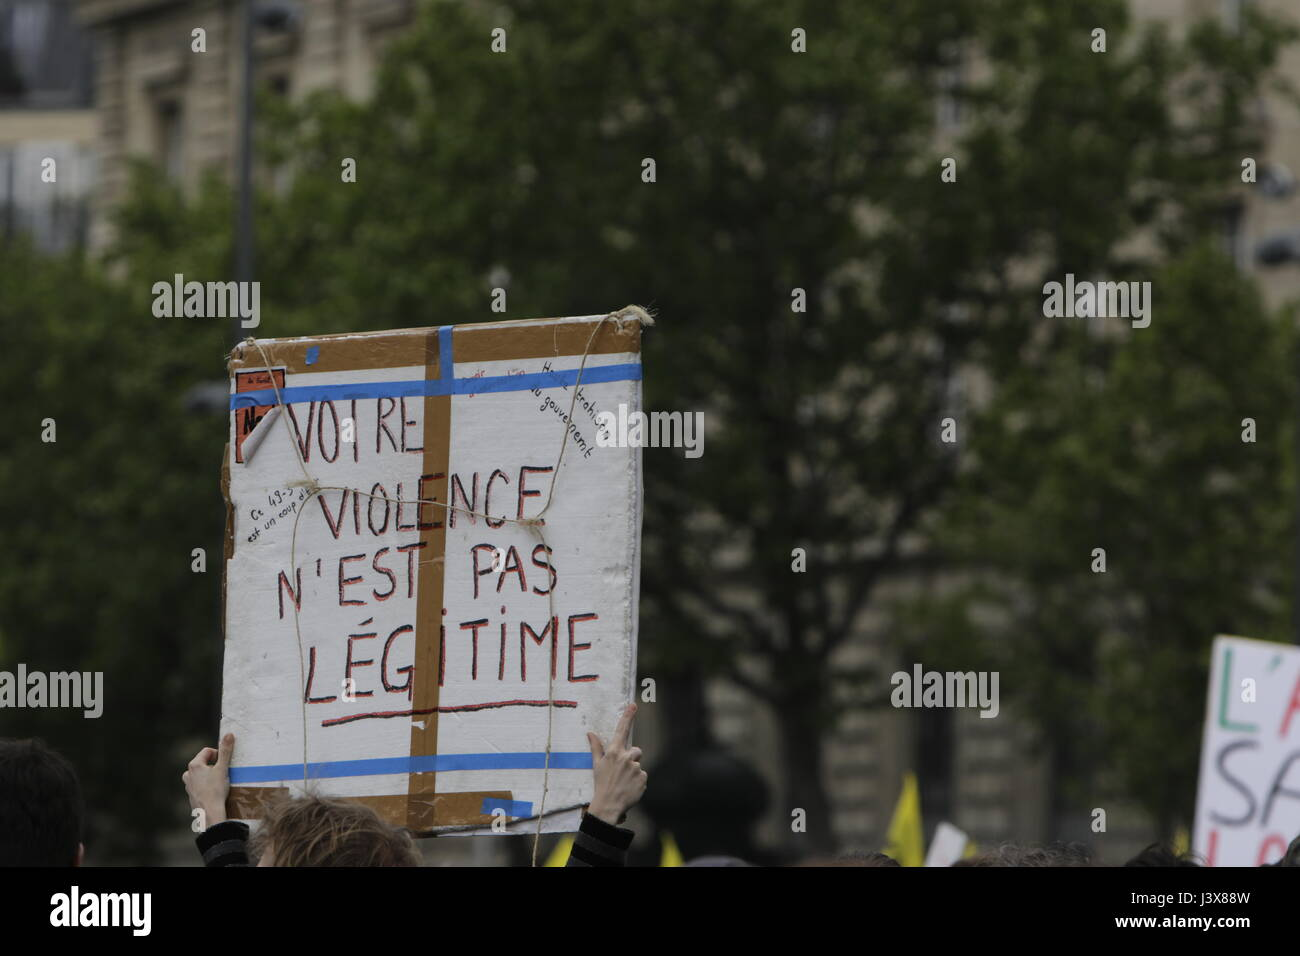 Paris, France. 8th May, 2017. A protester holds up a sign that reads 'Your violence is not legitimate'. - Stock Image